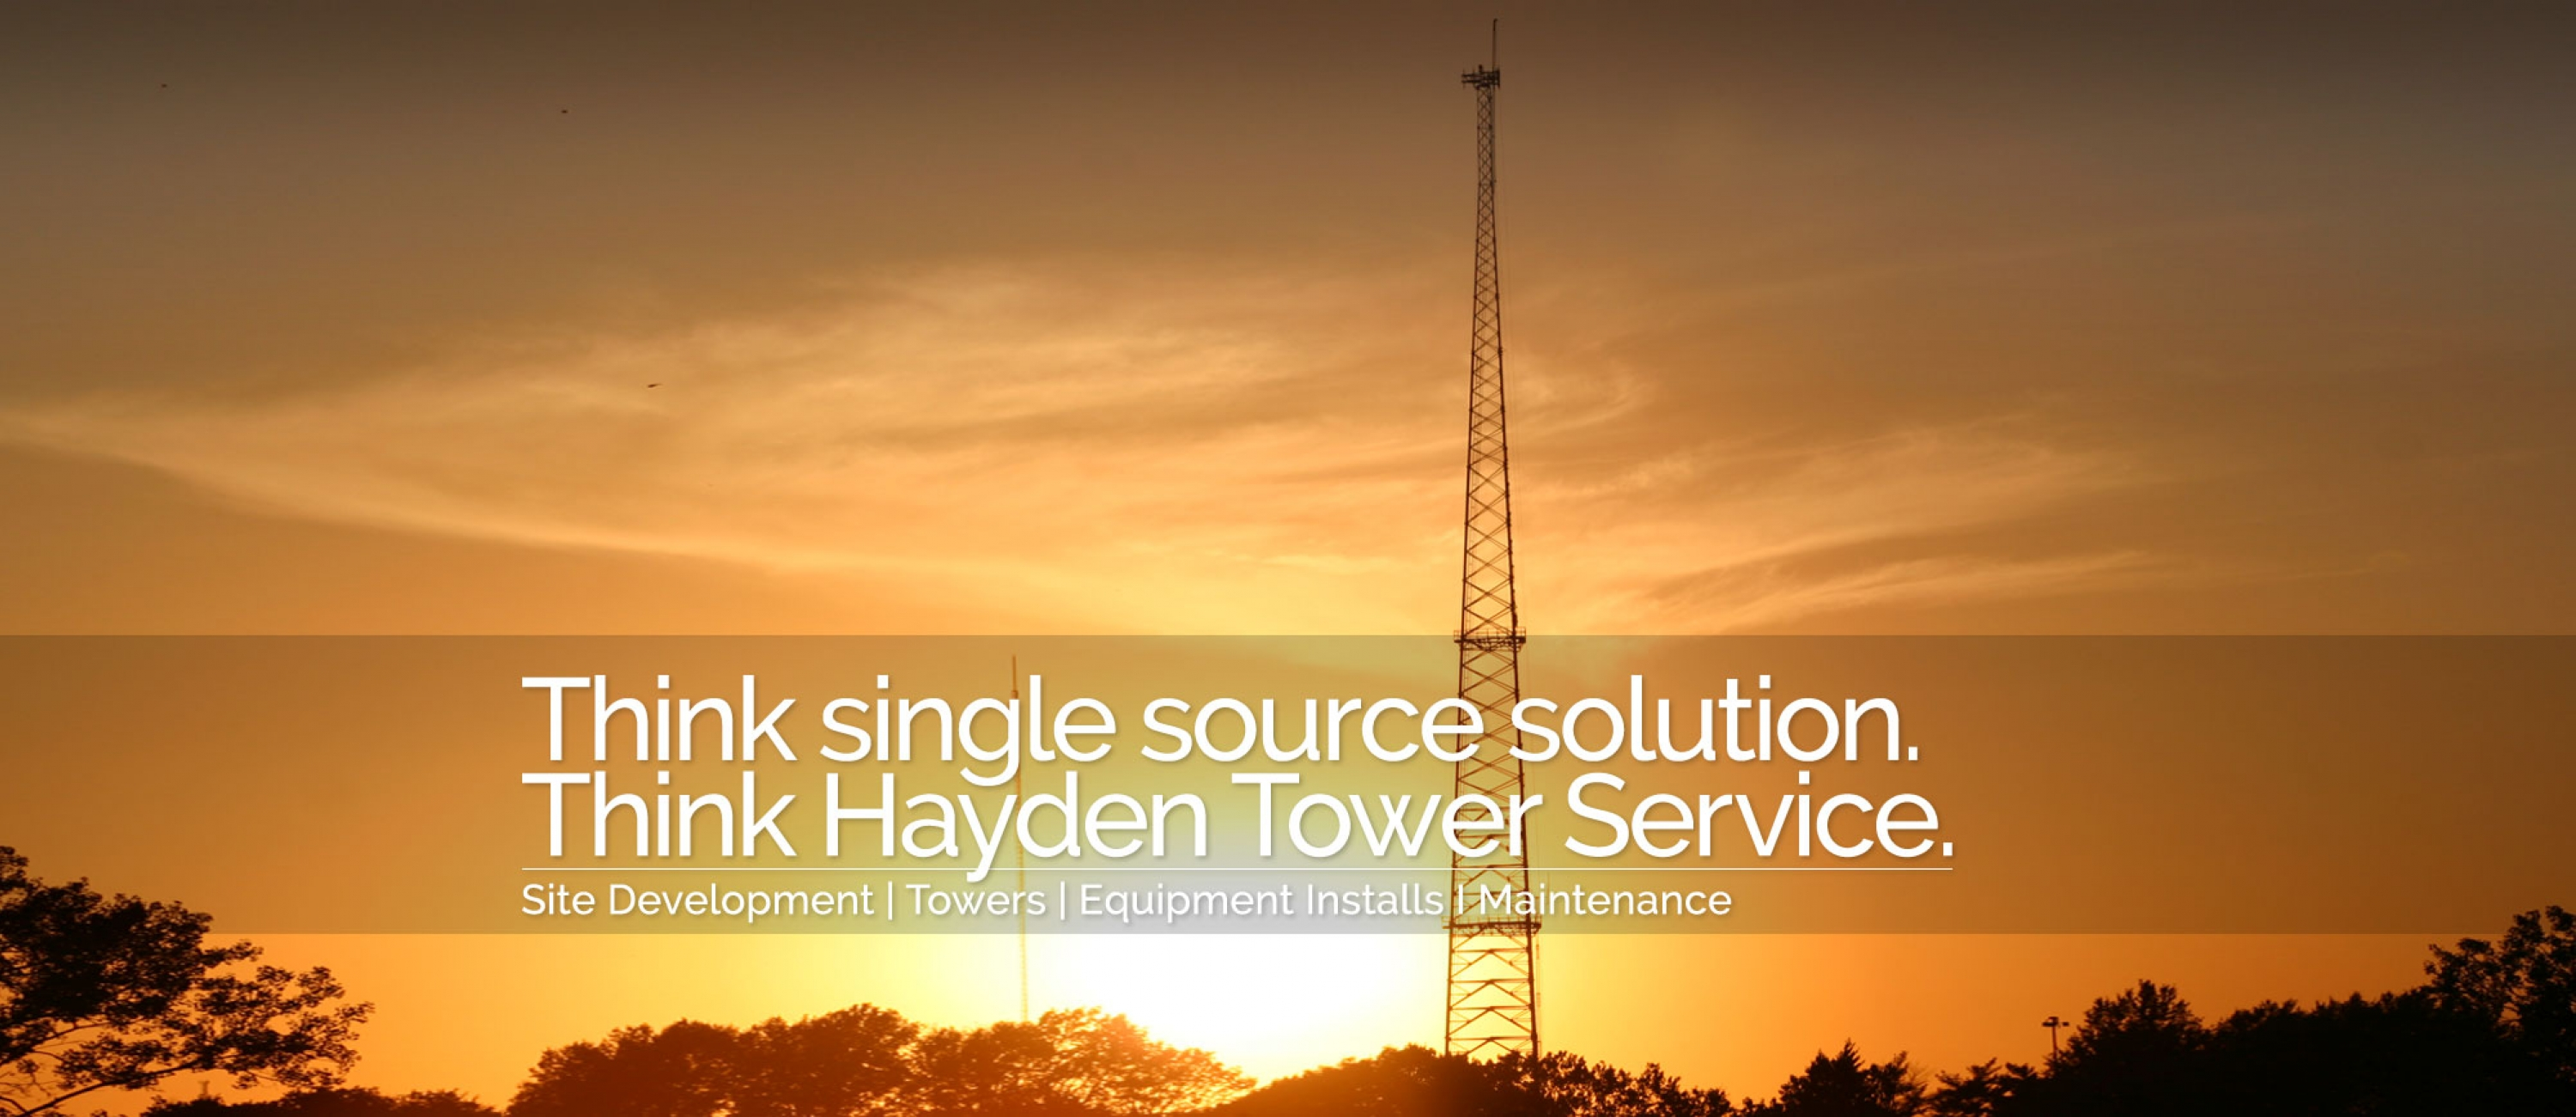 Think single source solution. Think Hayden Tower Services.